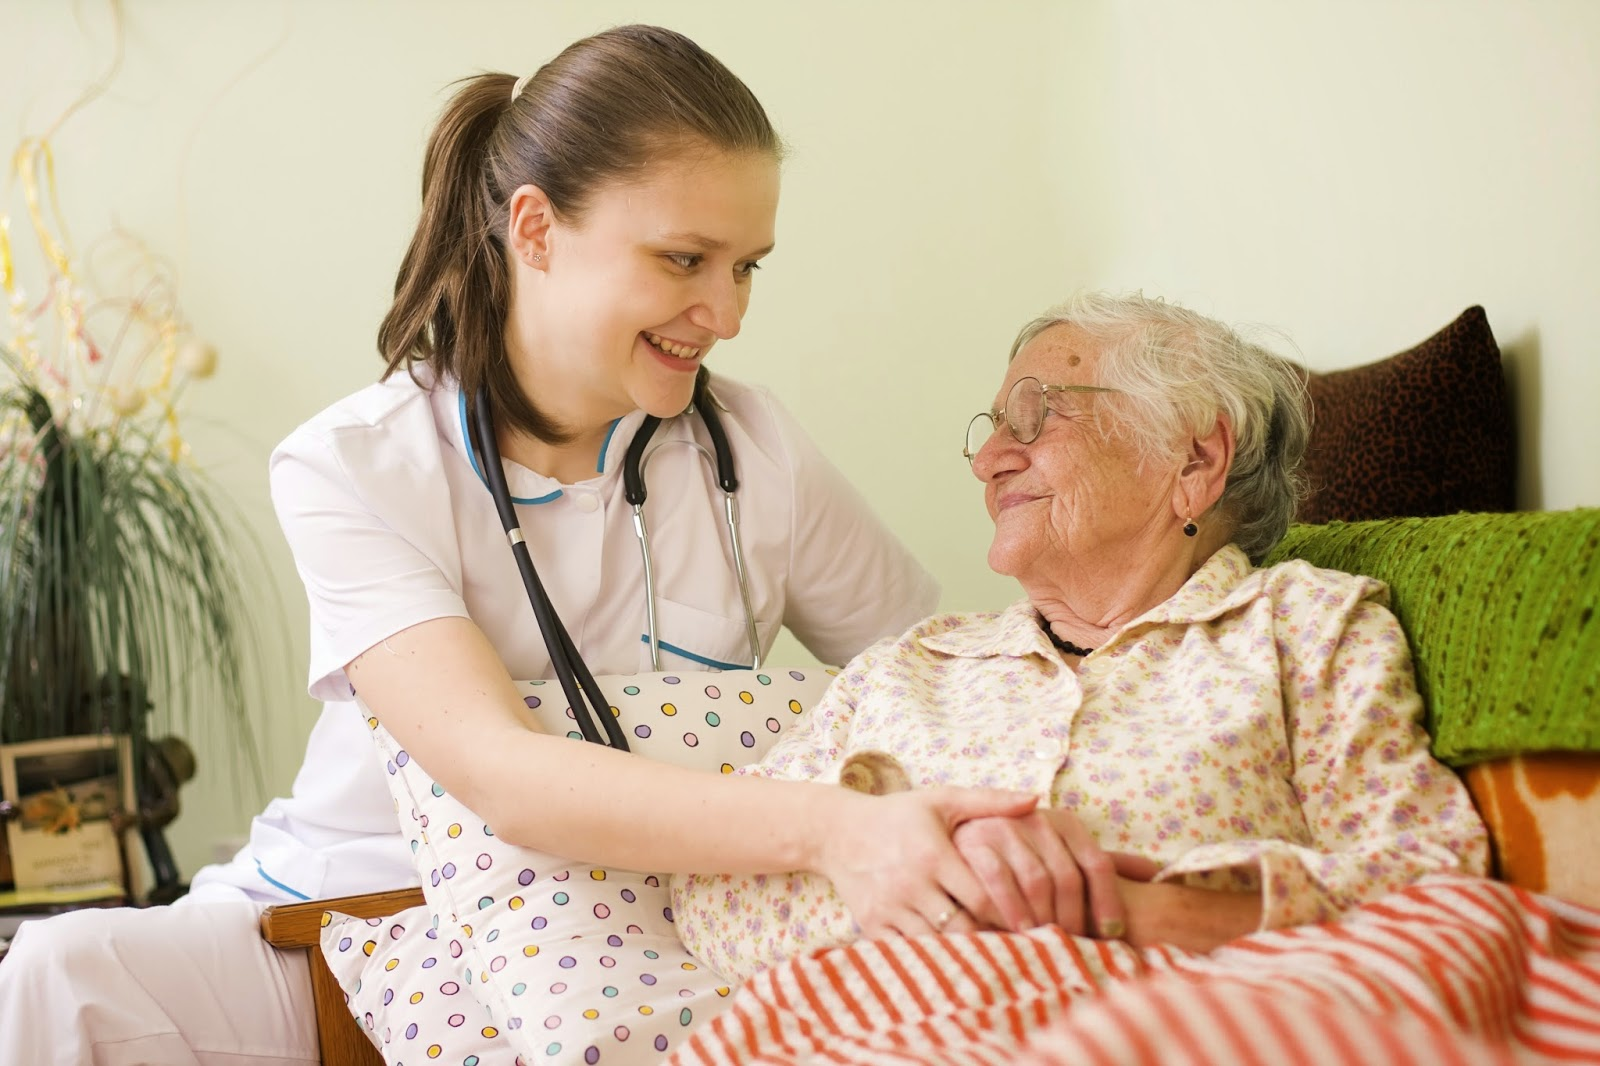 Health care provider comforts patient in home setting